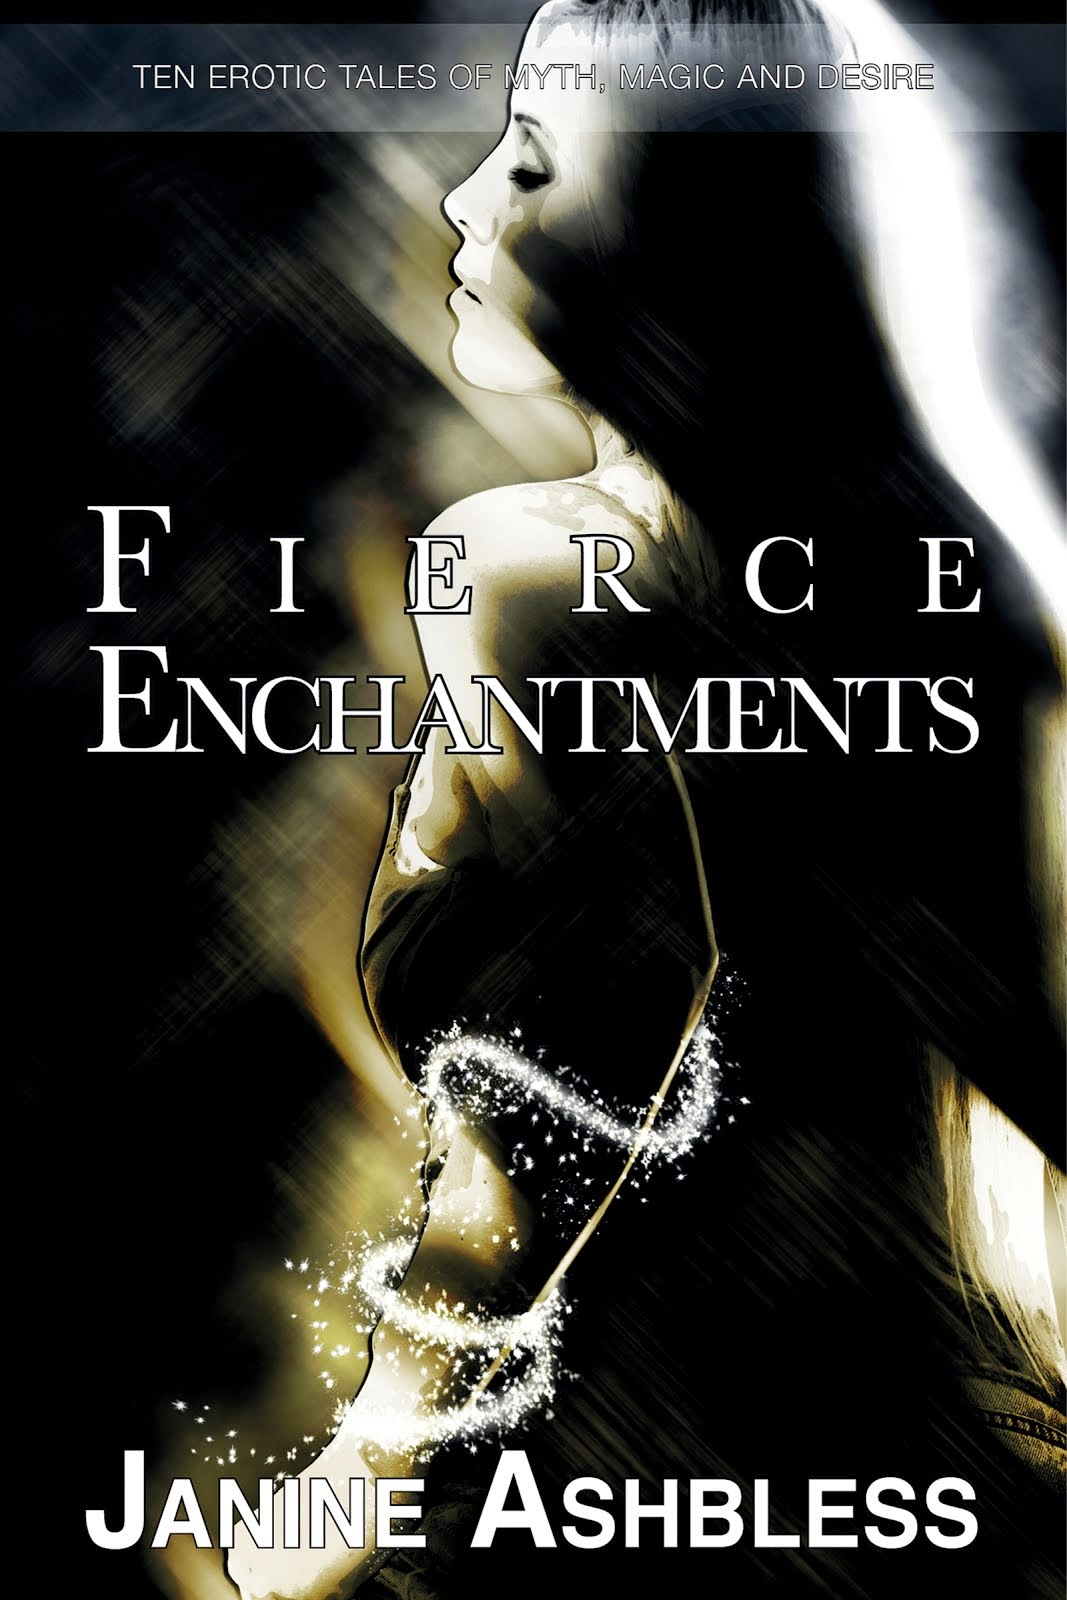 Fierce Enchantments